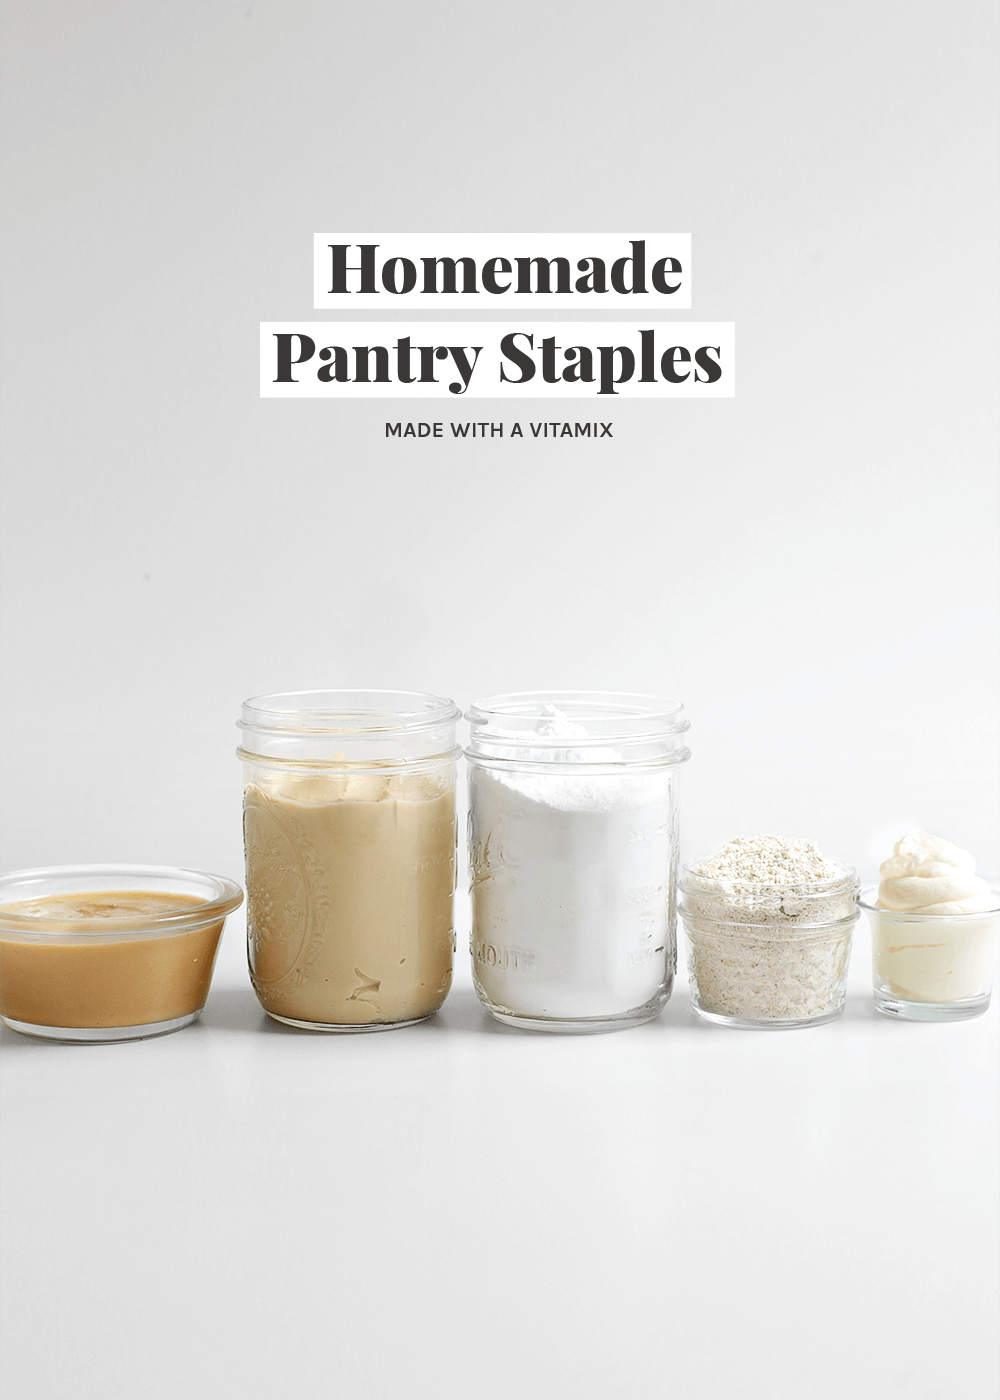 Homemade Pantry Staples made with a Vitamix from The Faux Martha